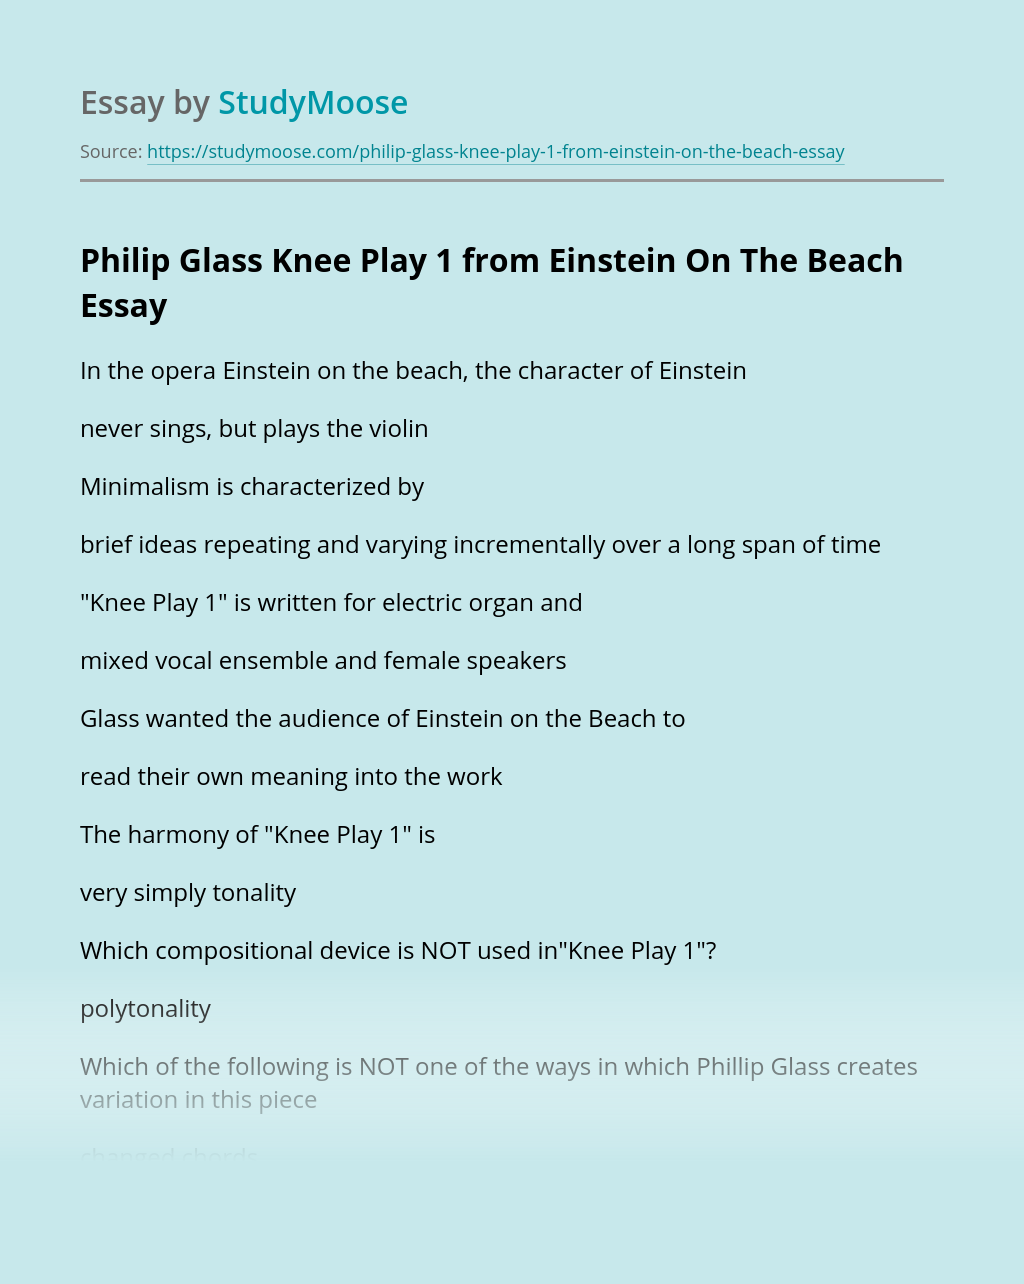 Philip Glass Knee Play 1 from Einstein On The Beach